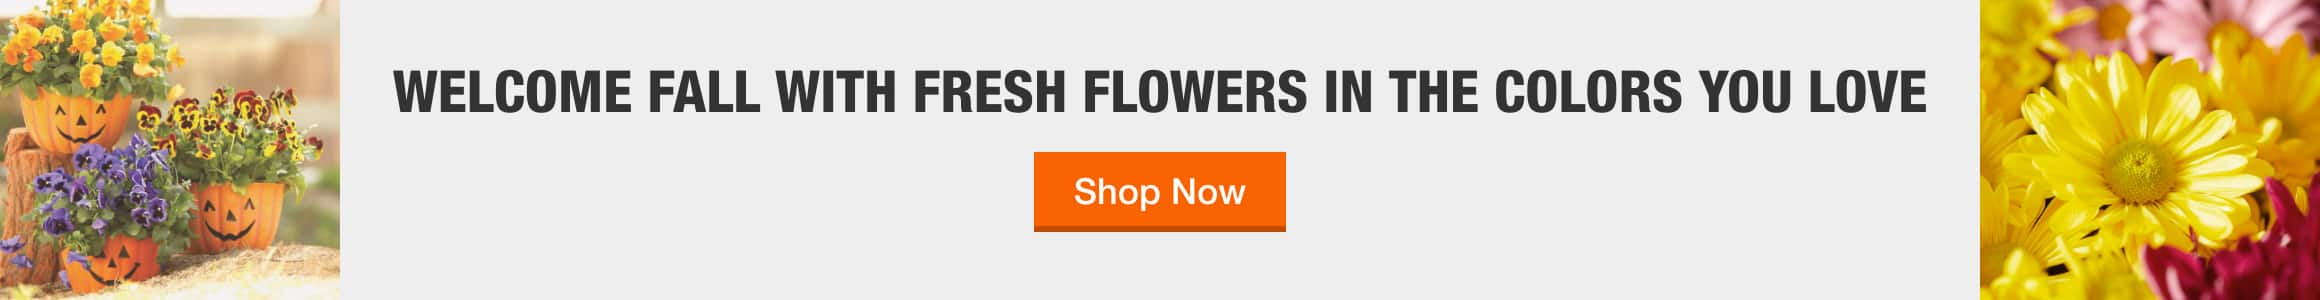 WELCOME FALL WITH FRESH FLOWERS IN THE COLORS YOU LOVE